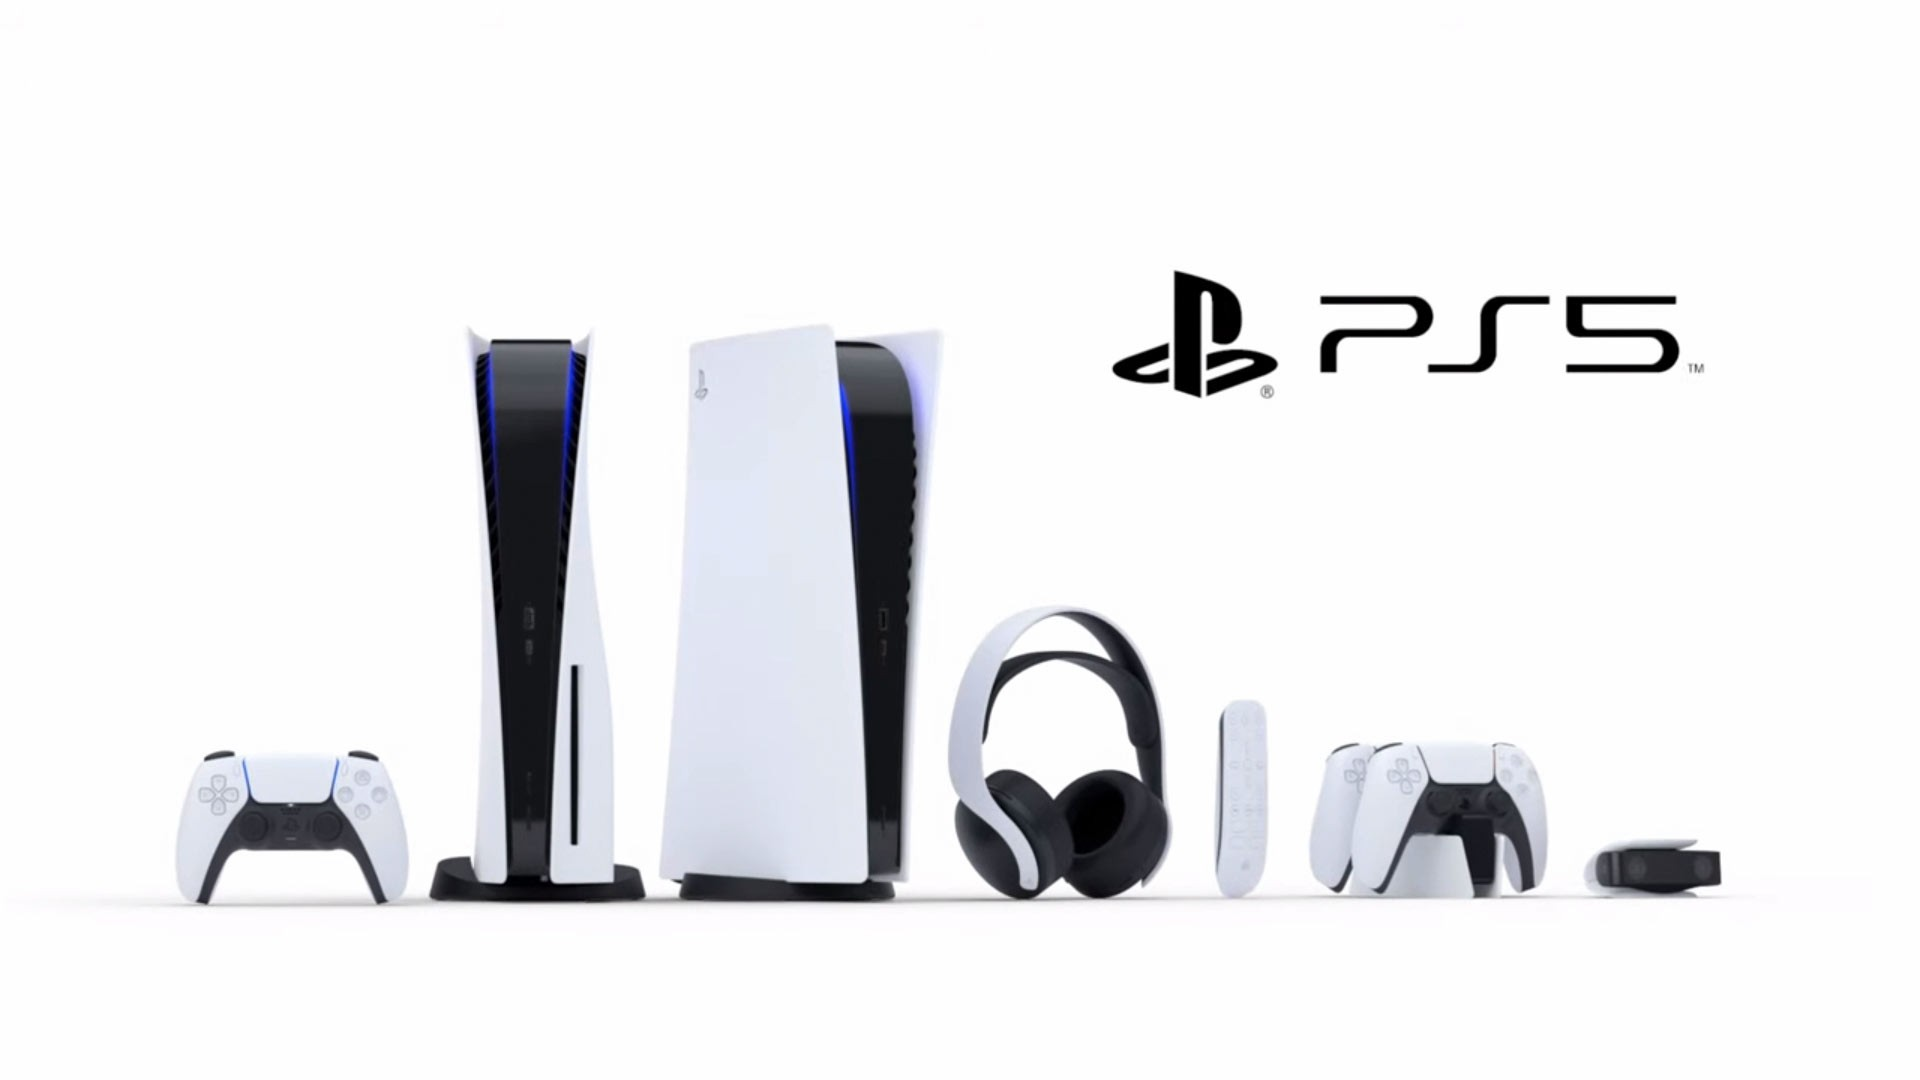 Playstation 5 Console Images Playstation Universe